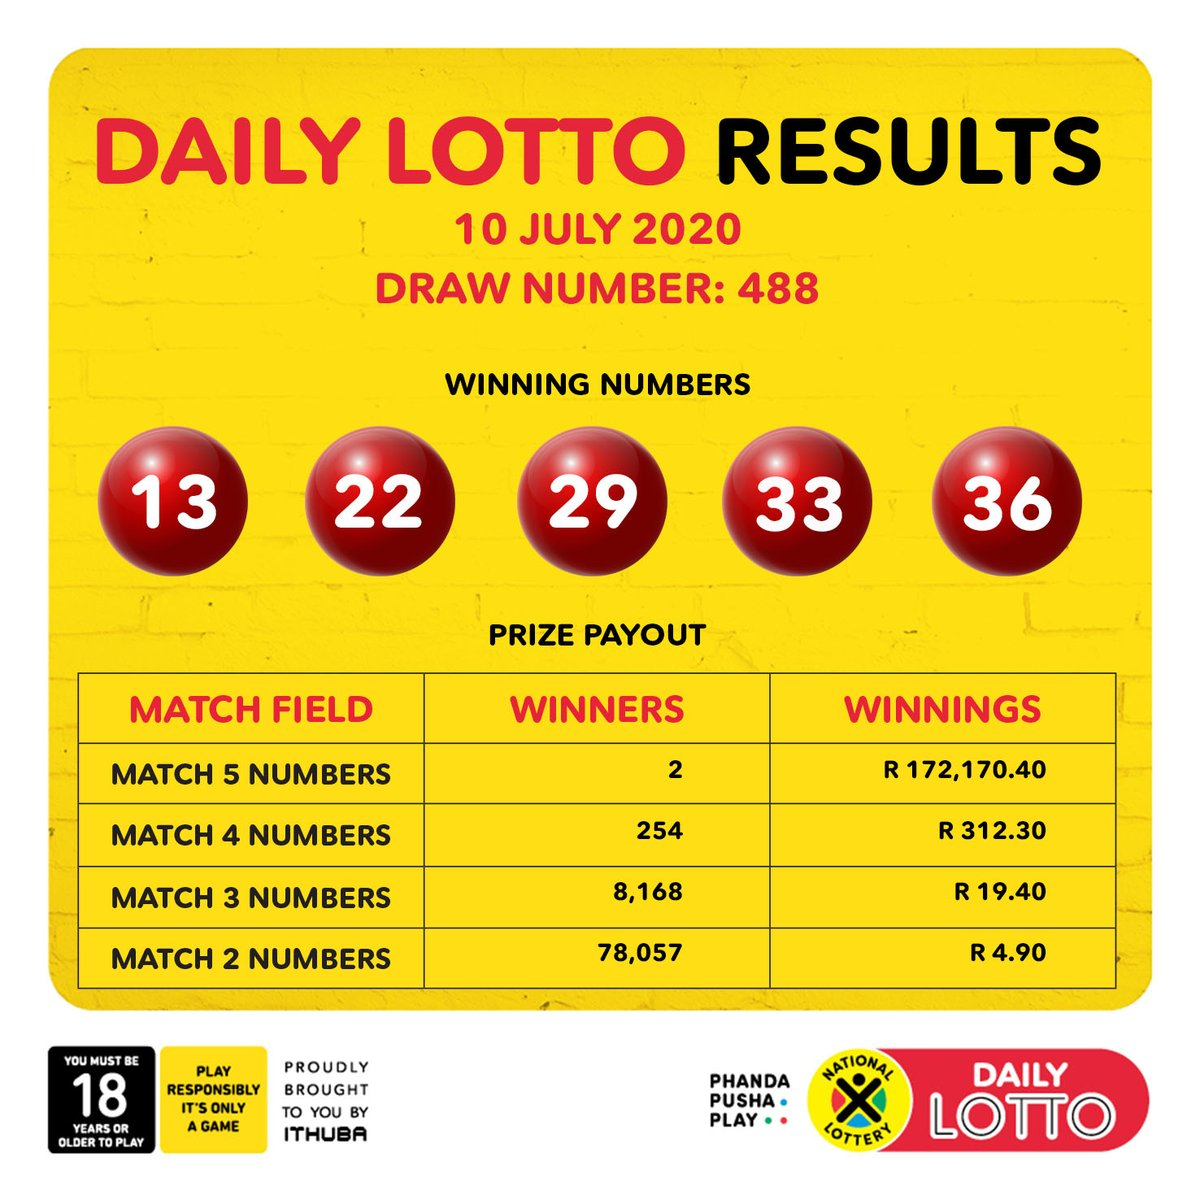 Here are the DrawResults & Payouts for (10/07/2020): #DAILY LOTTO: 13, 22, 29, 33, 36 Congratulations to all the #winners!